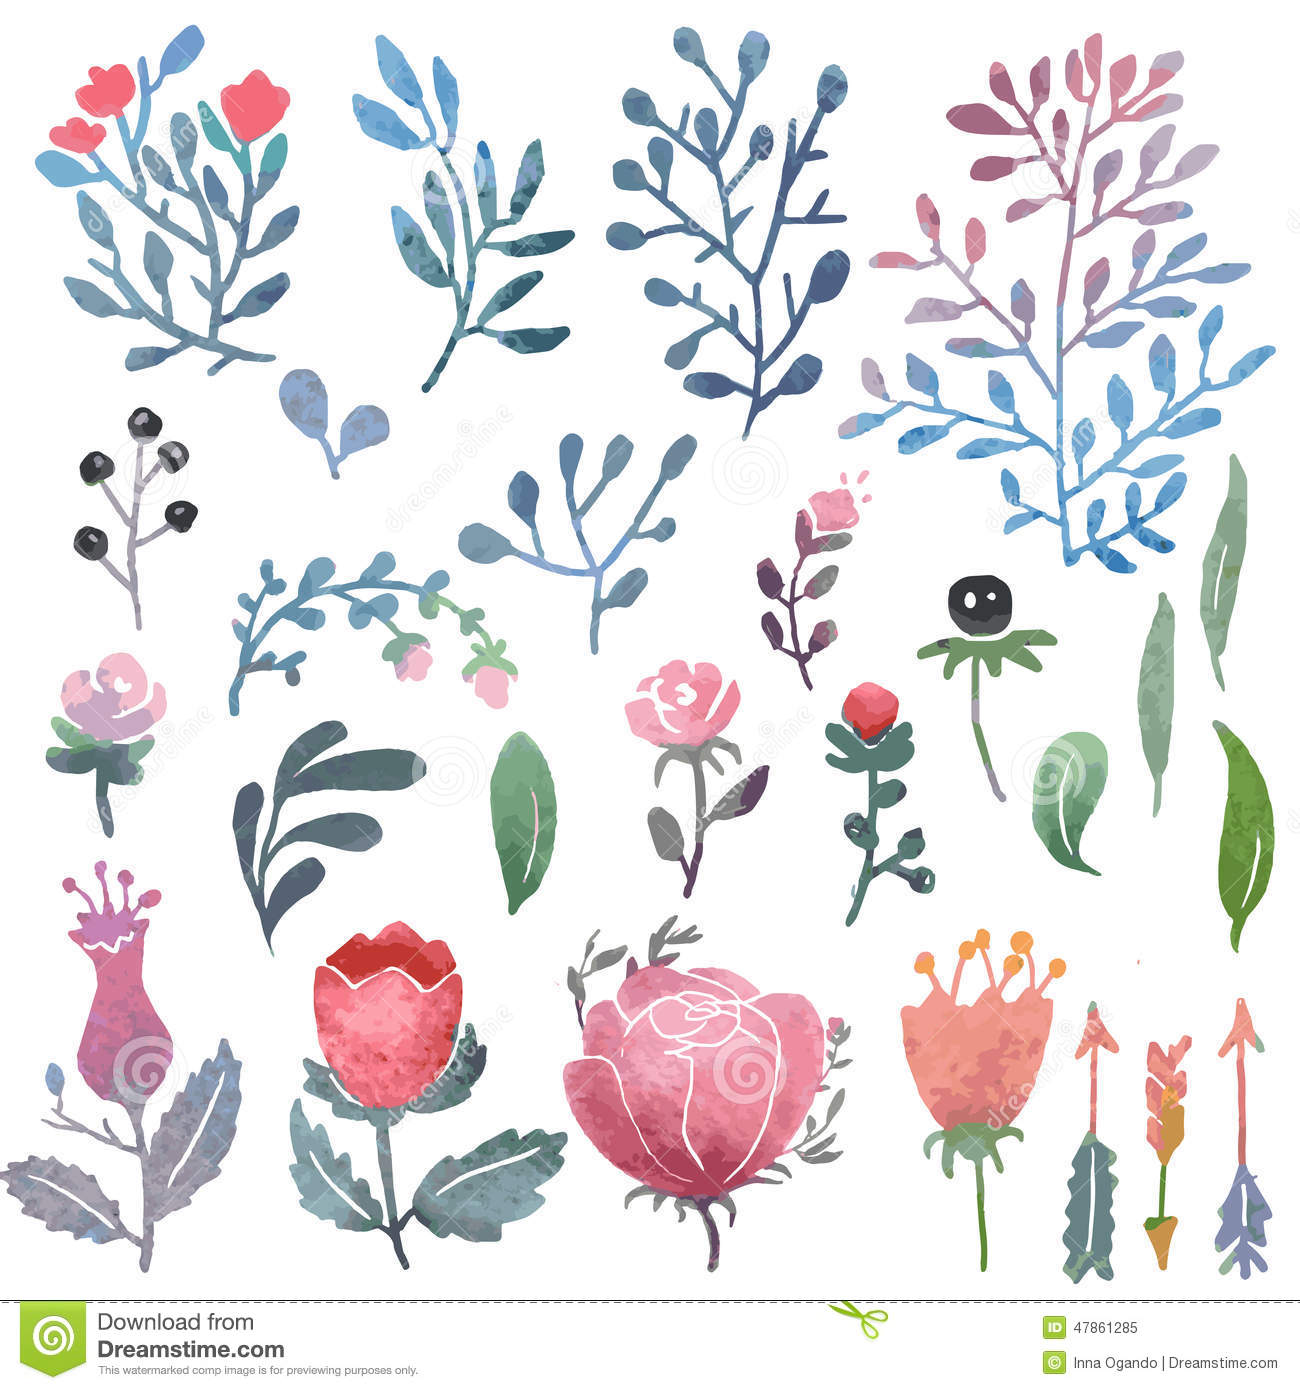 Nature clipart birthday. Watercolor clip art stock png black and white library